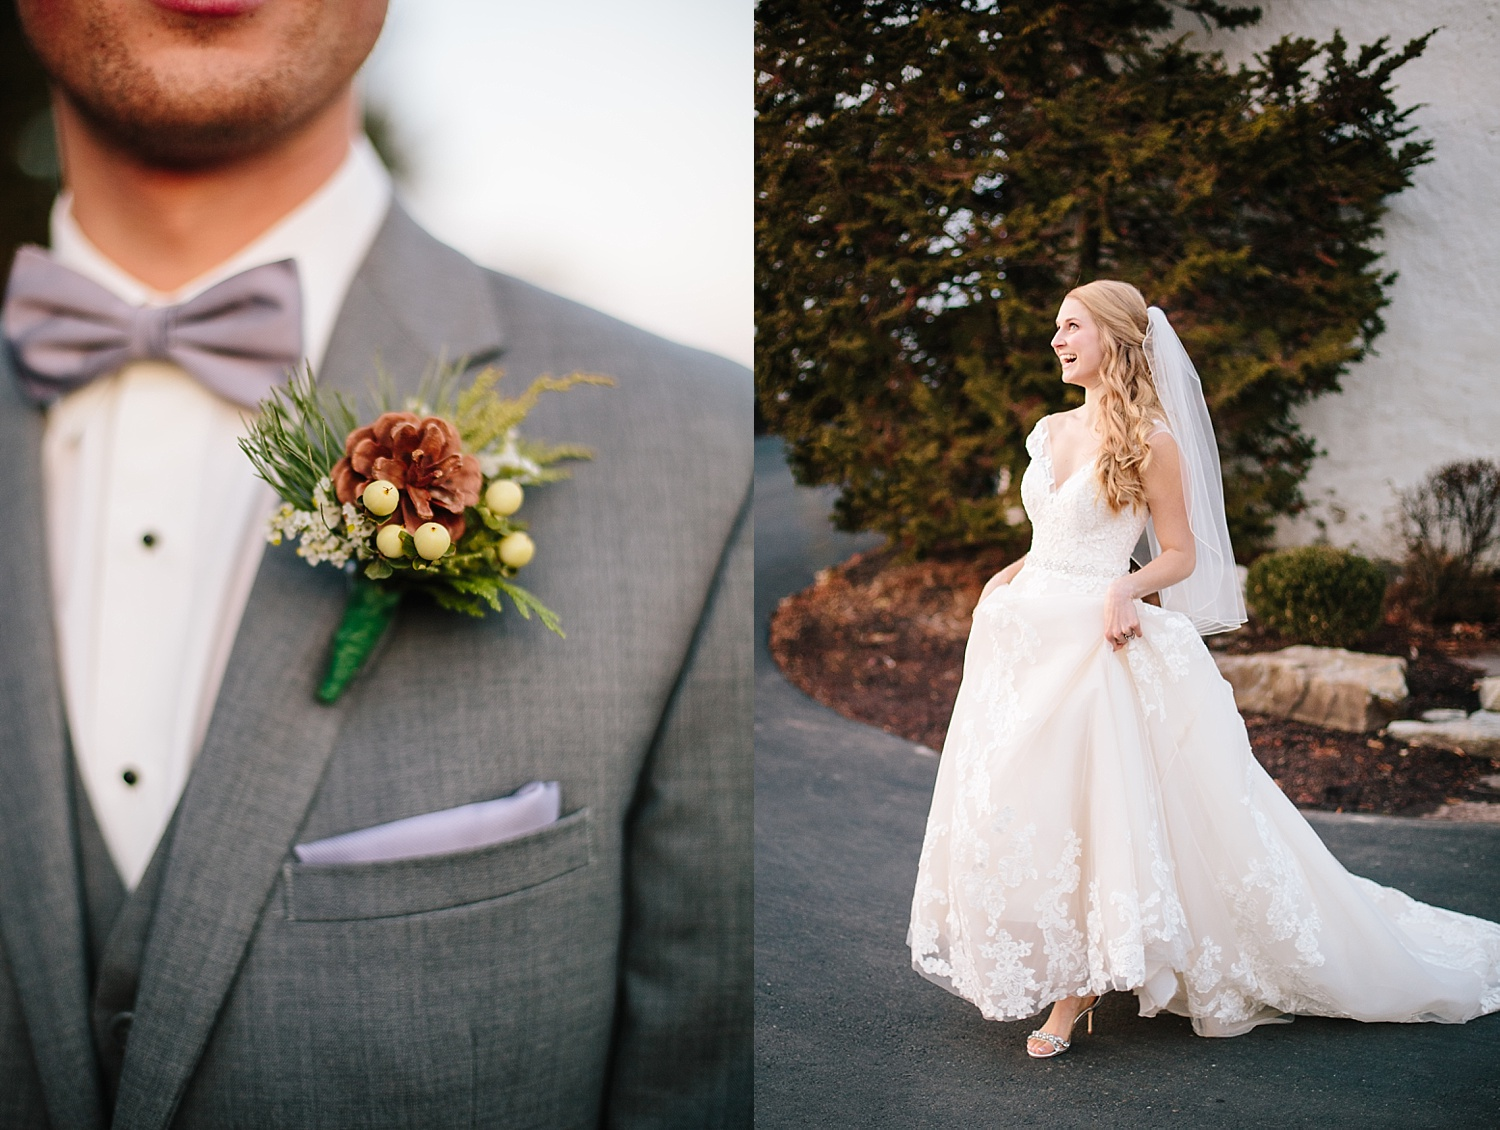 jessdavid_barnonbridge_phoenixville_winter_wedding_image_087.jpg